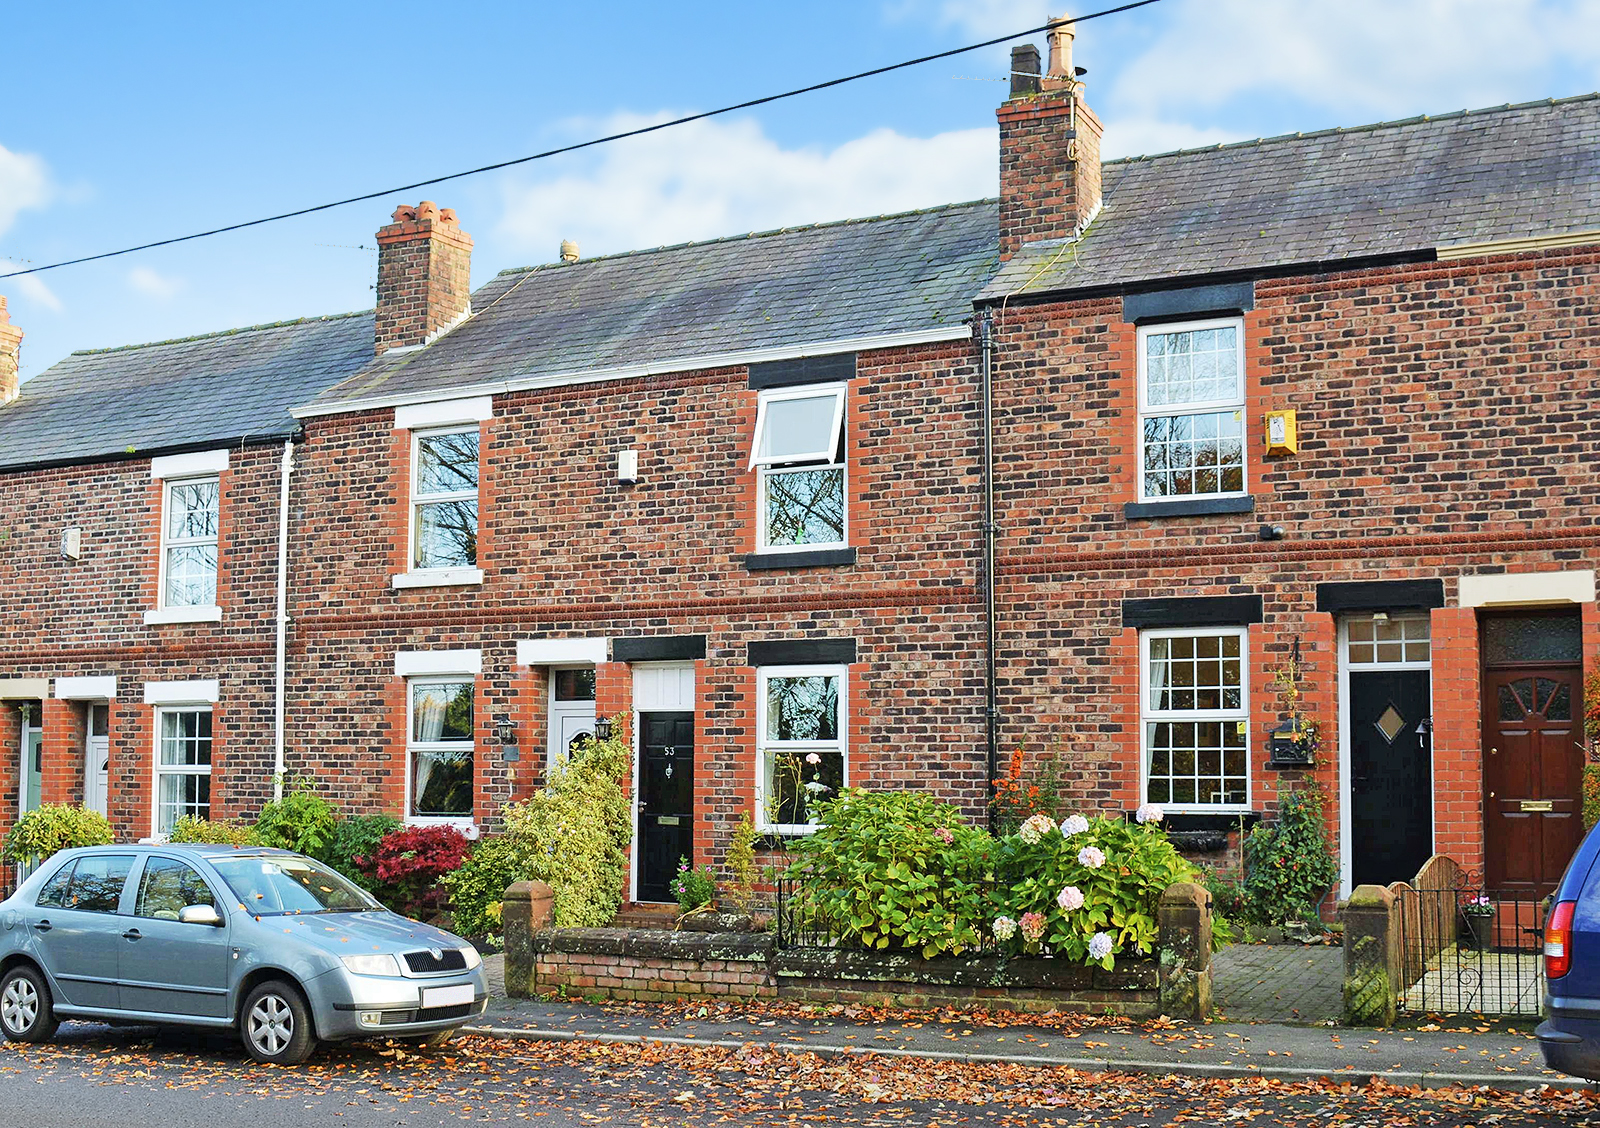 2 Bedroom House For Sale In Warrington